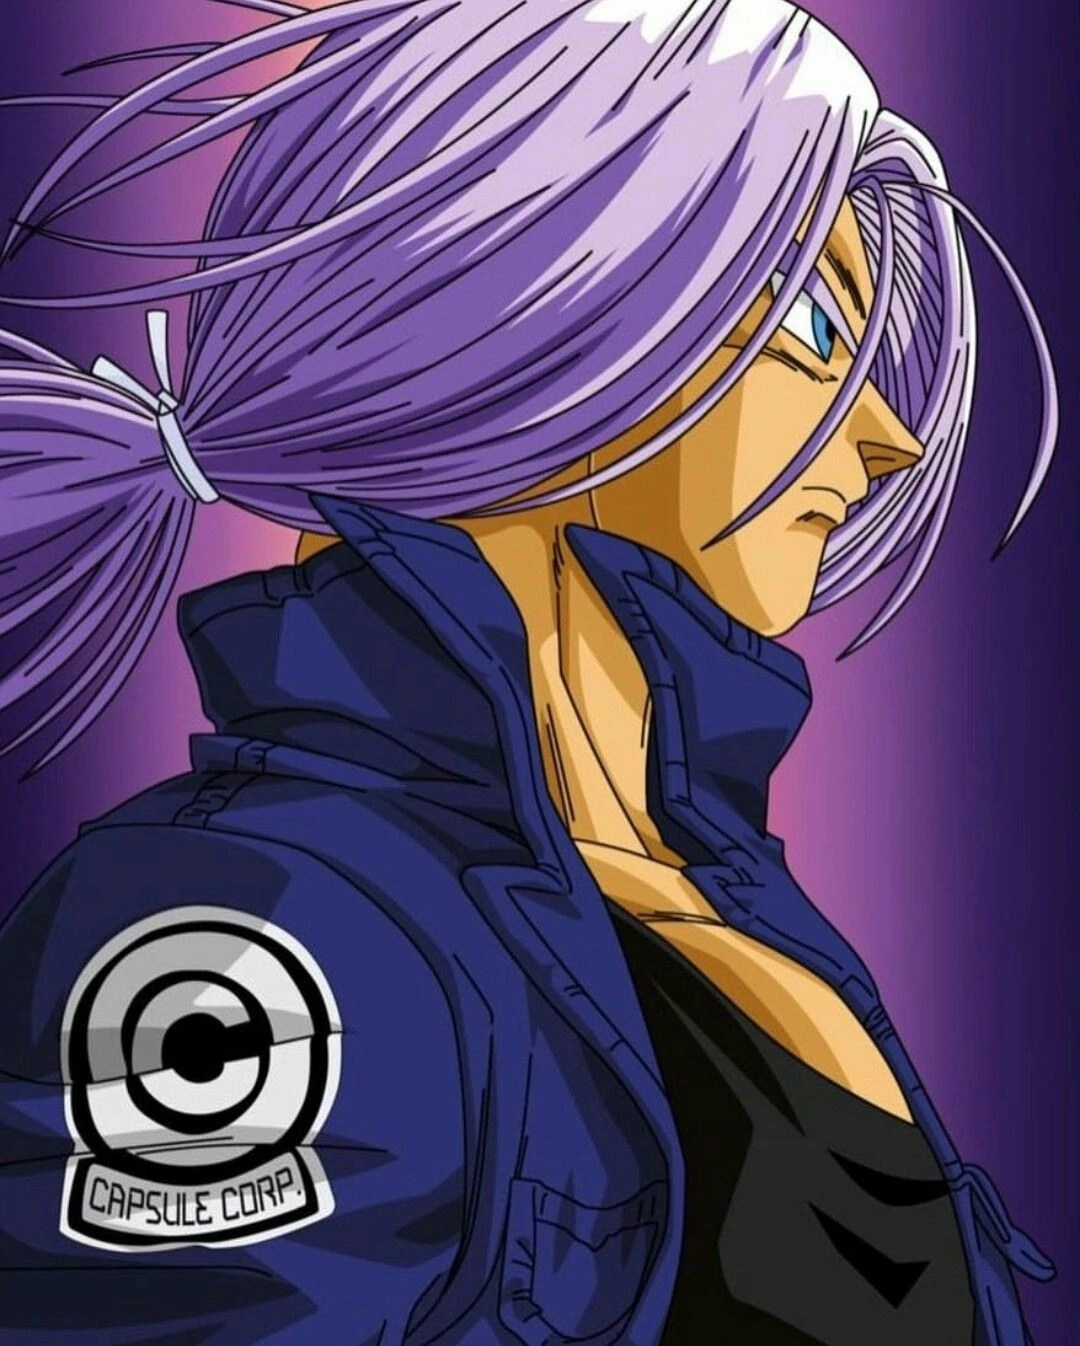 Trunks Hairstyle : trunks, hairstyle, Which, Better, Trunks, Short, Hair?, Fandom